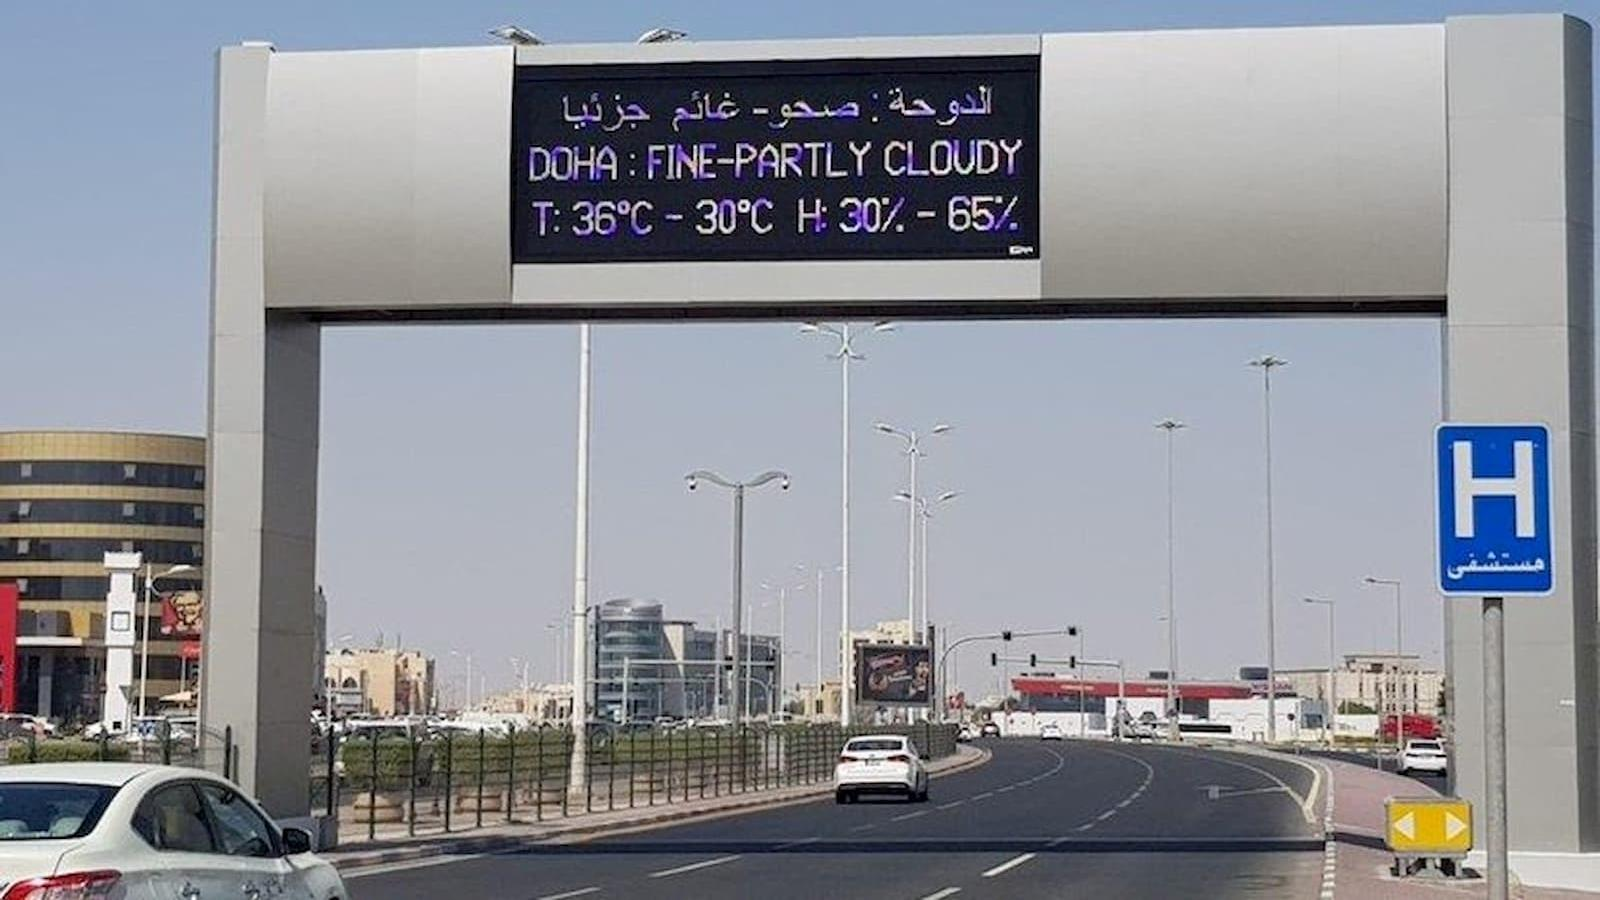 E-panels on Qatar's major roads to provide weather updates